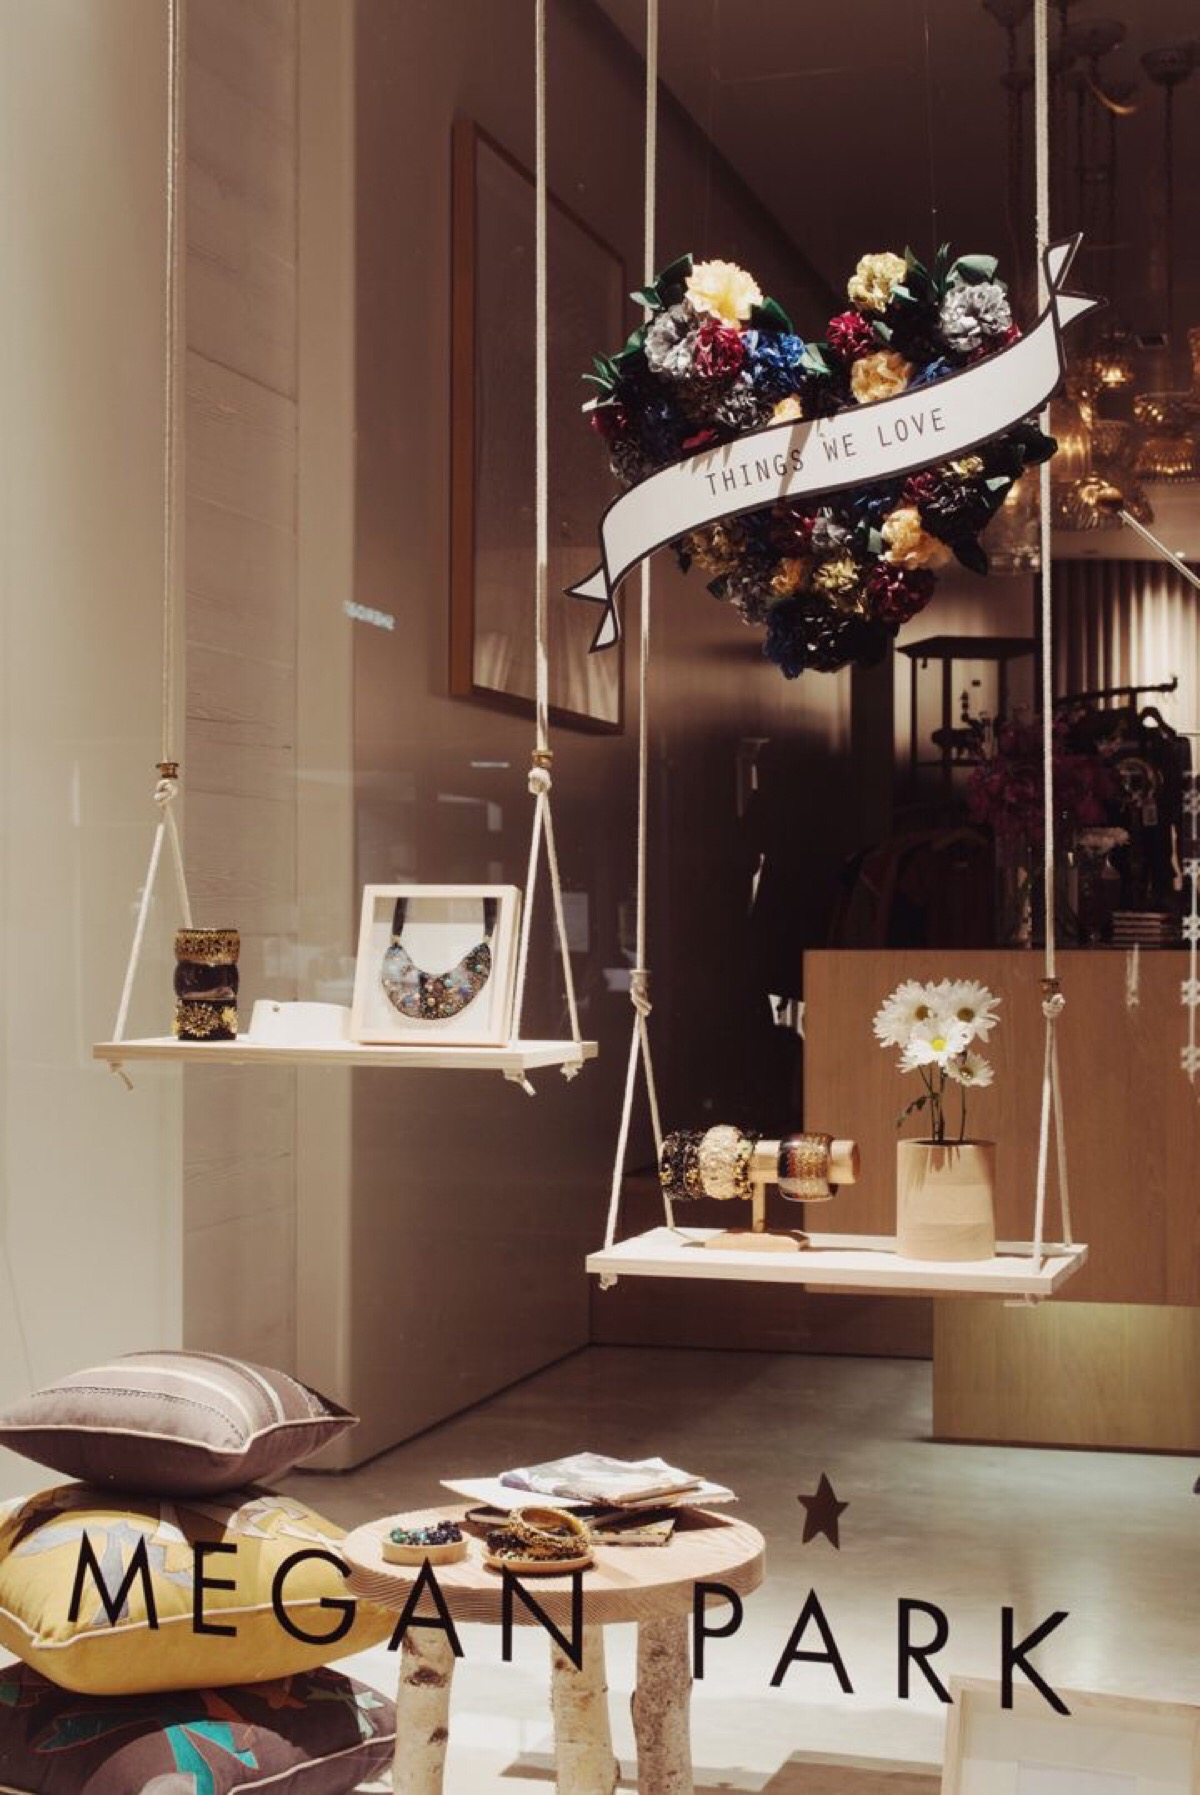 Dreamy ideas for jewelry display using swings instead of stands, and placing the jewelry in a discrete, fun way on them.